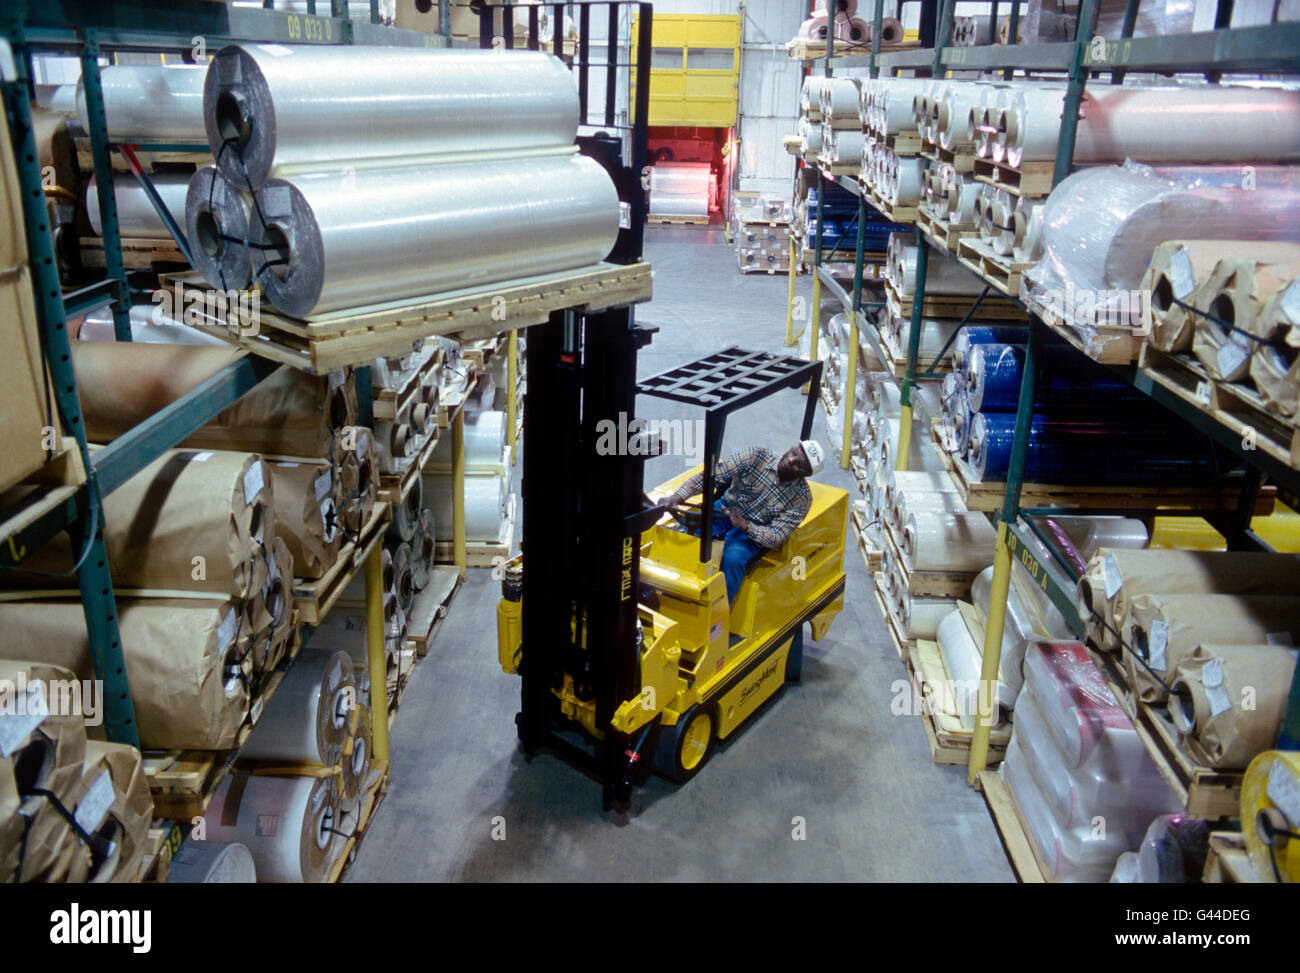 Forklift working in a large distribution warehouse - Stock Image